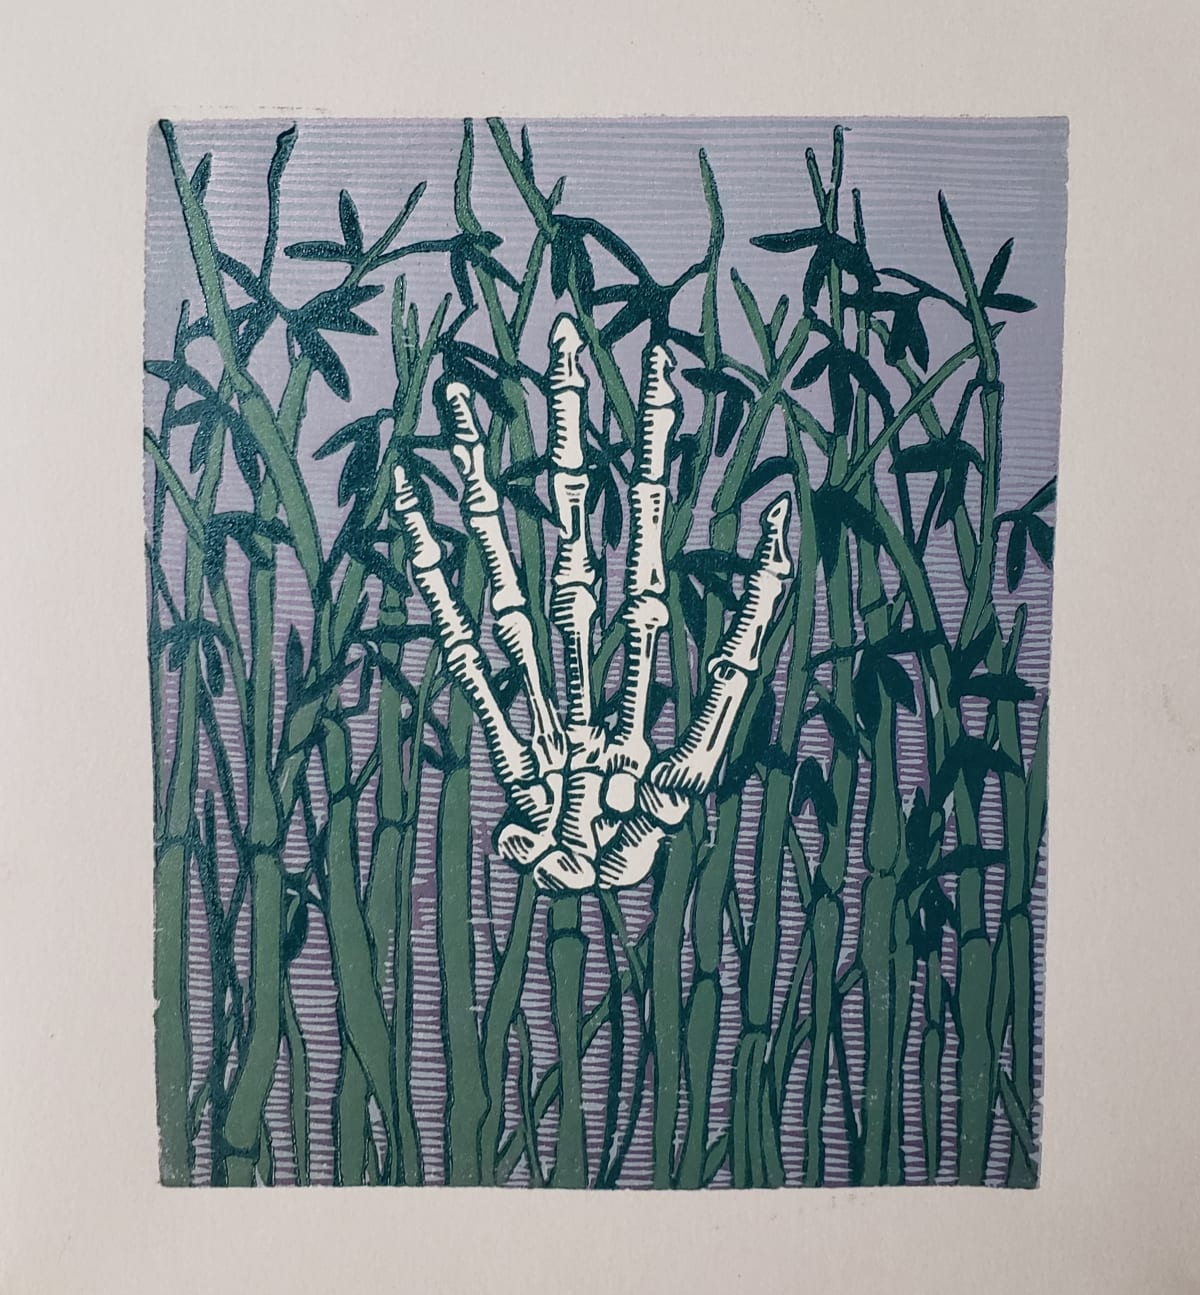 Katie Machain, Phalanges, 2019